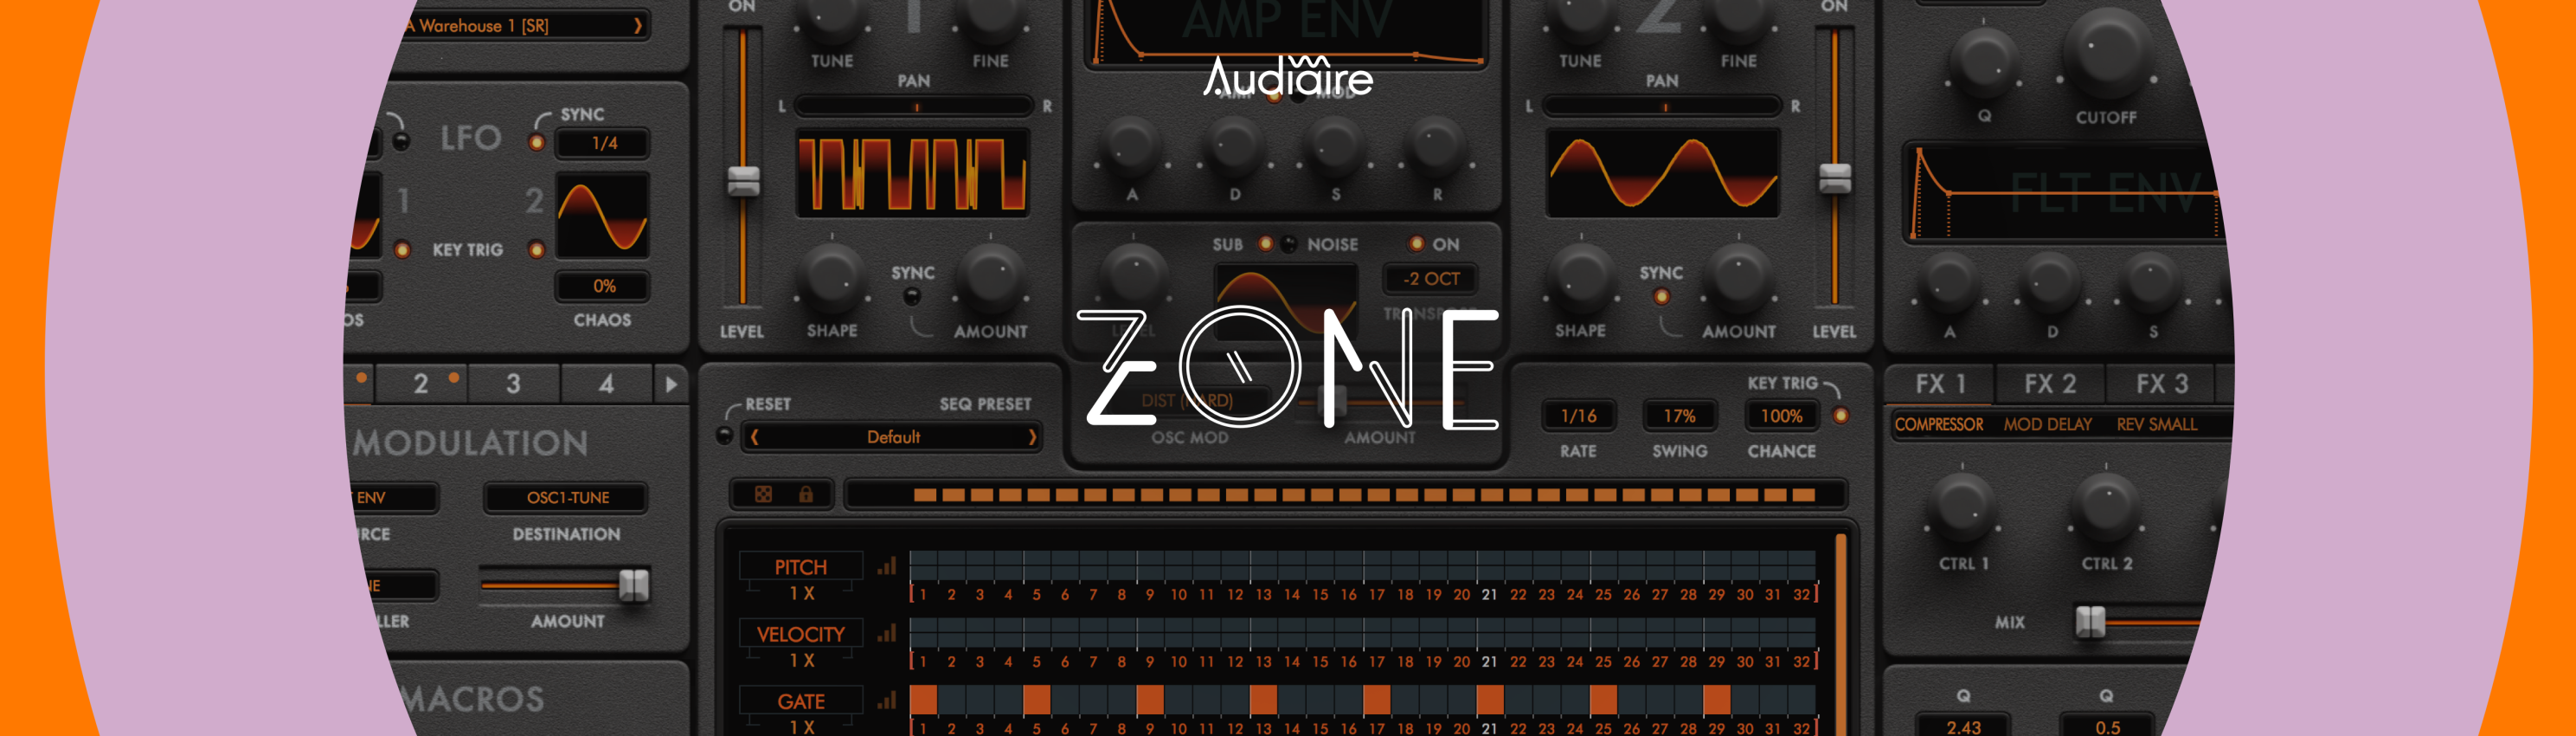 Zone by Audiaire Rent-to-own